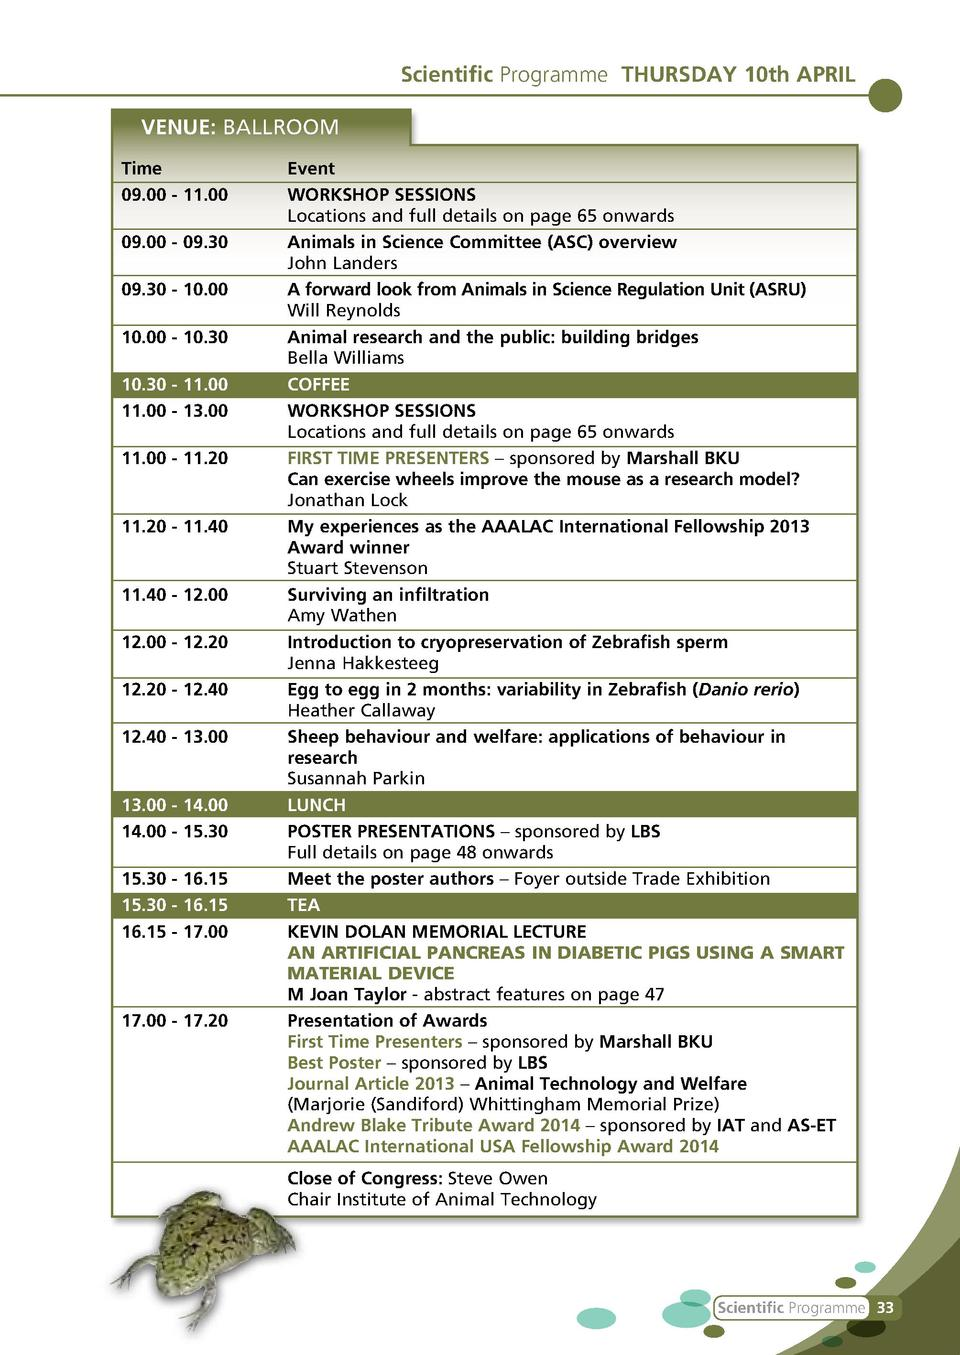 Scientific Programme THURSDAY 10th APRIL VENUE  BALLROOM Time Event 09.00 - 11.00   WORKSHOP SESSIONS Locations and full d...